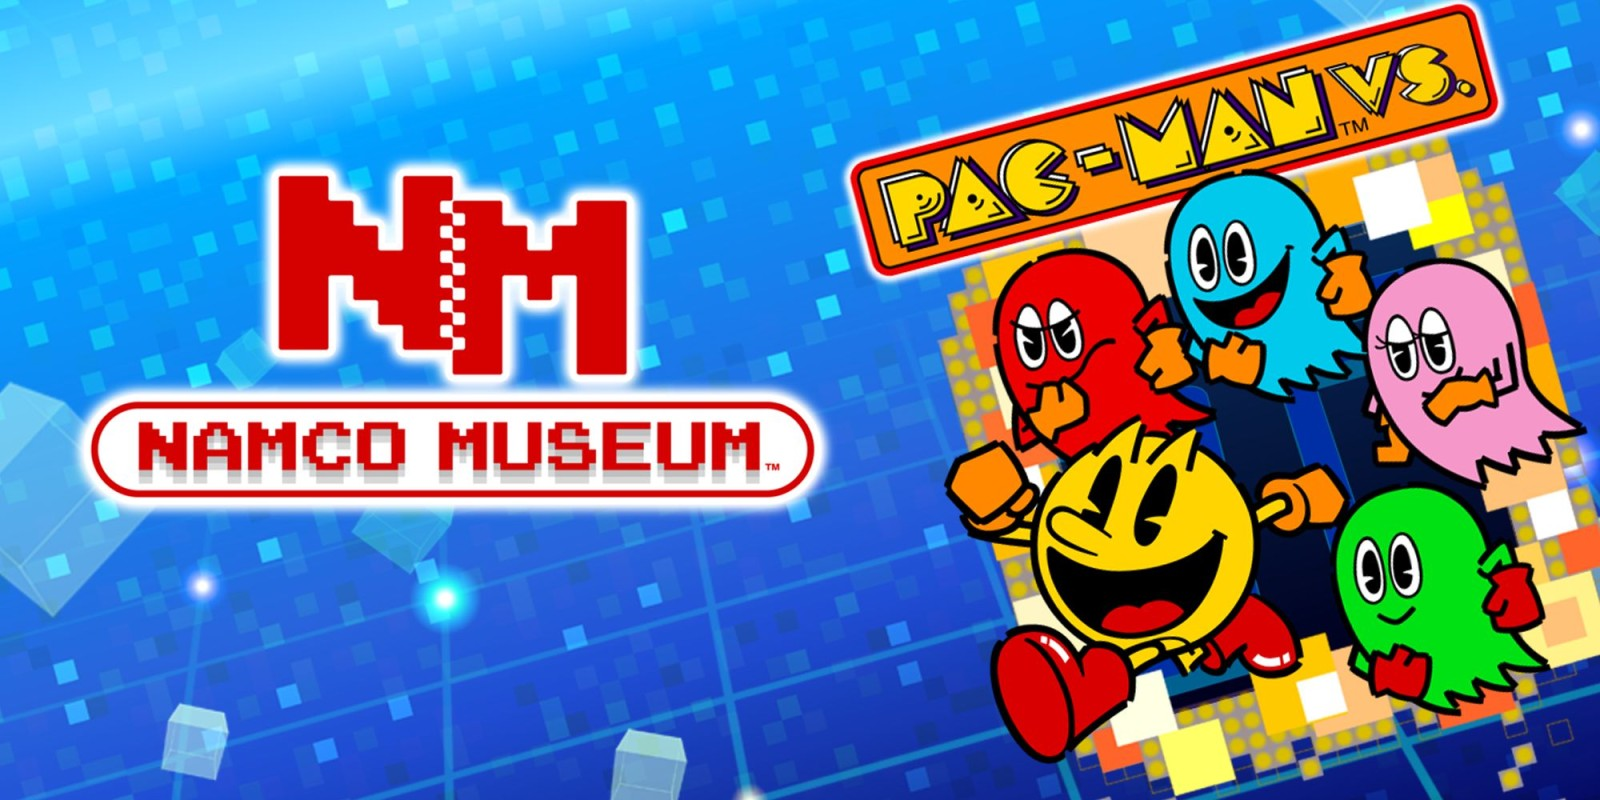 Pac Man Vs Version Multijugador Gratuita Programas Descargables